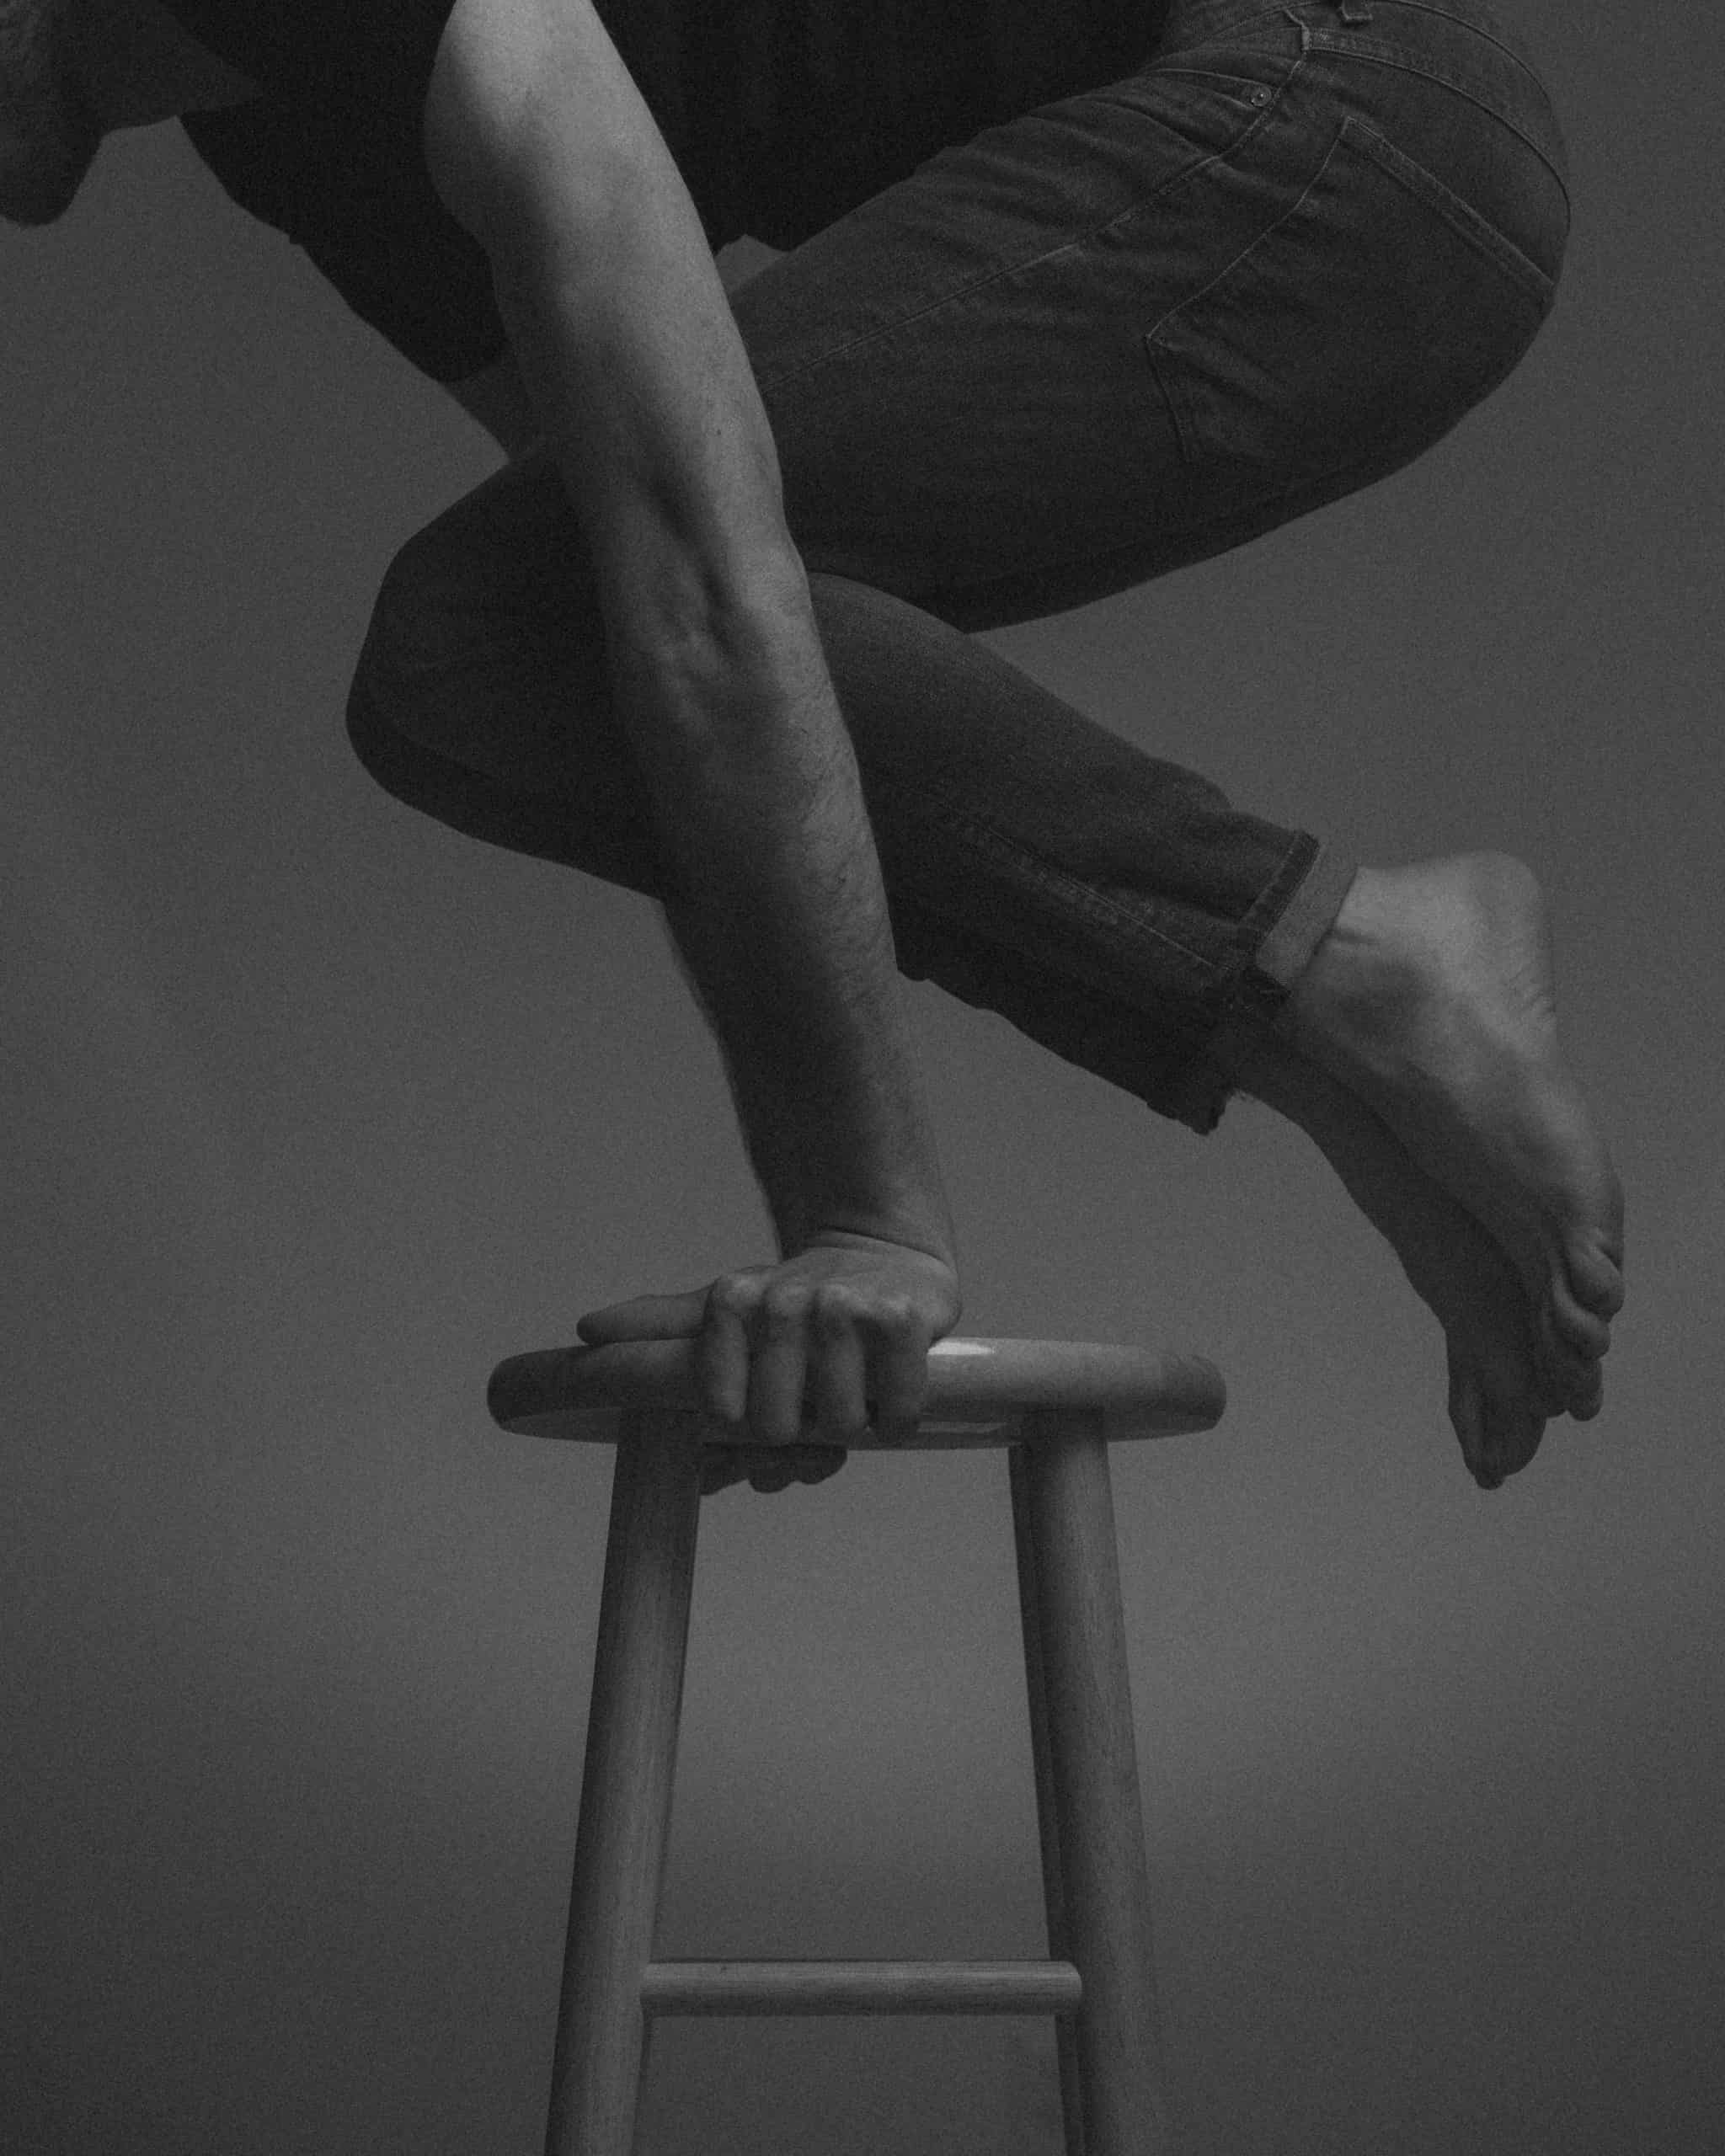 Chair Yoga Benefits- How To Do?